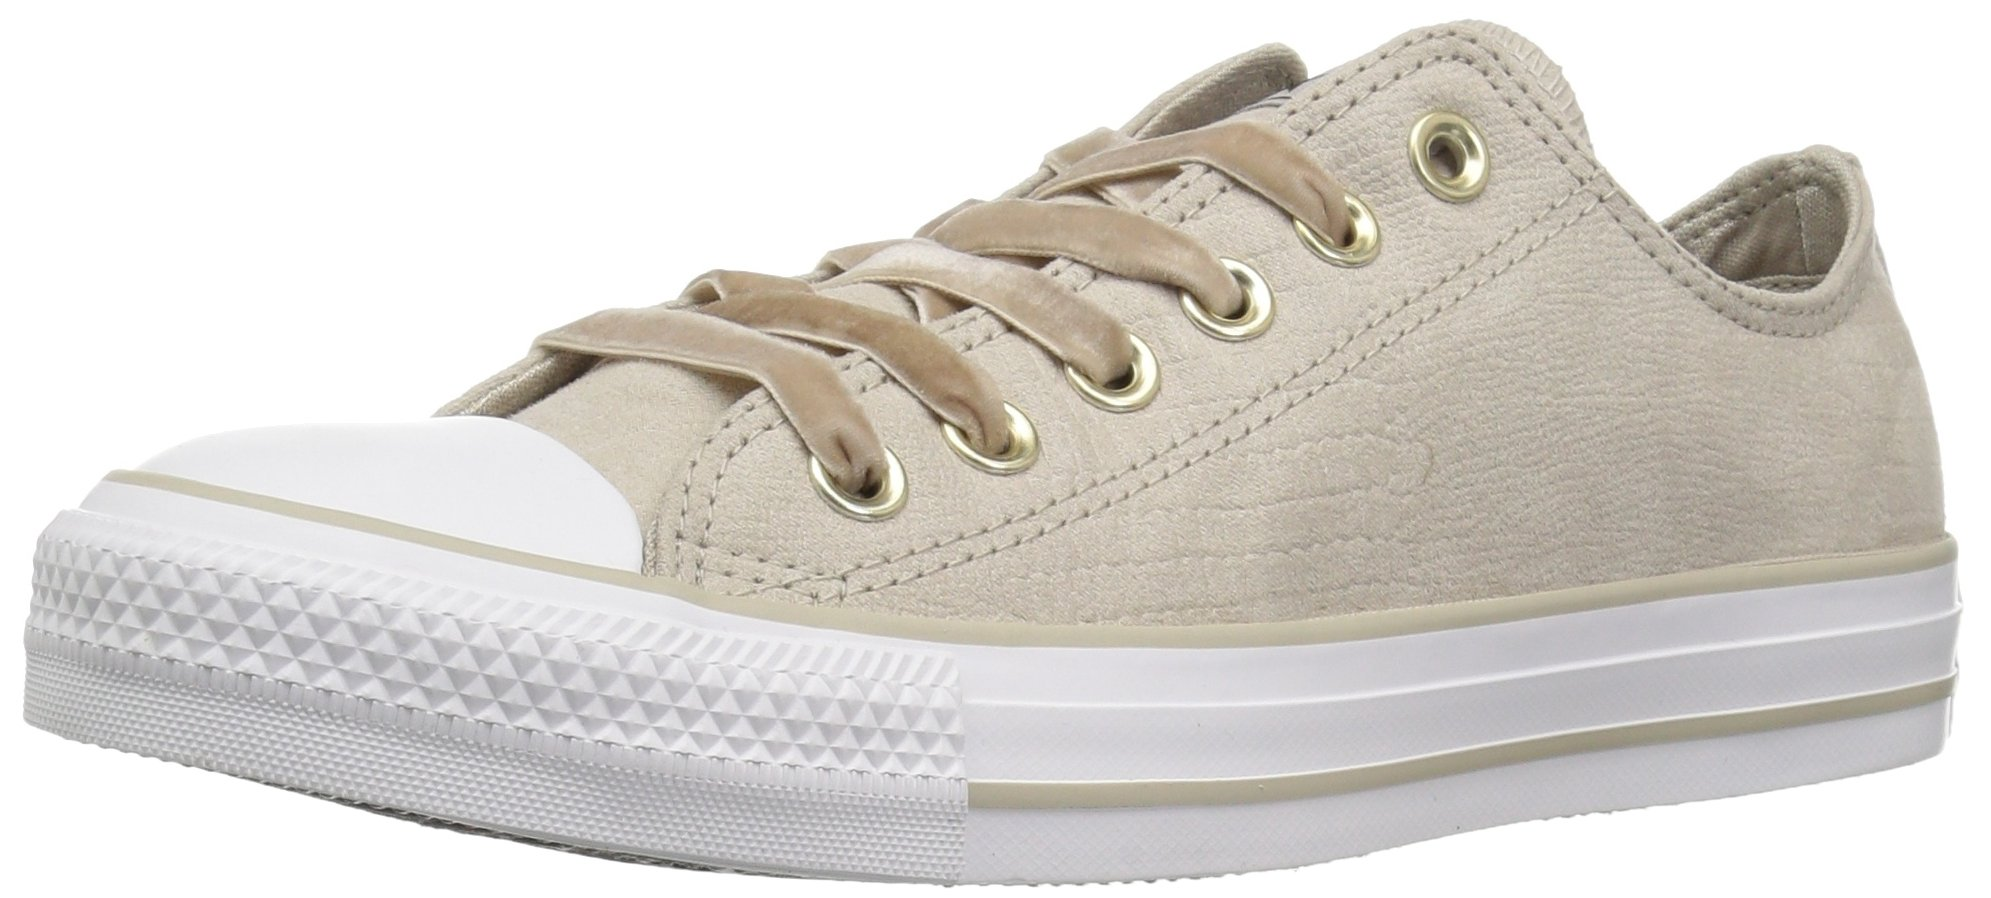 Converse Women's Chuck Taylor All Star Velvet Low TOP Sneaker Papyrus/White, 6.5 M US